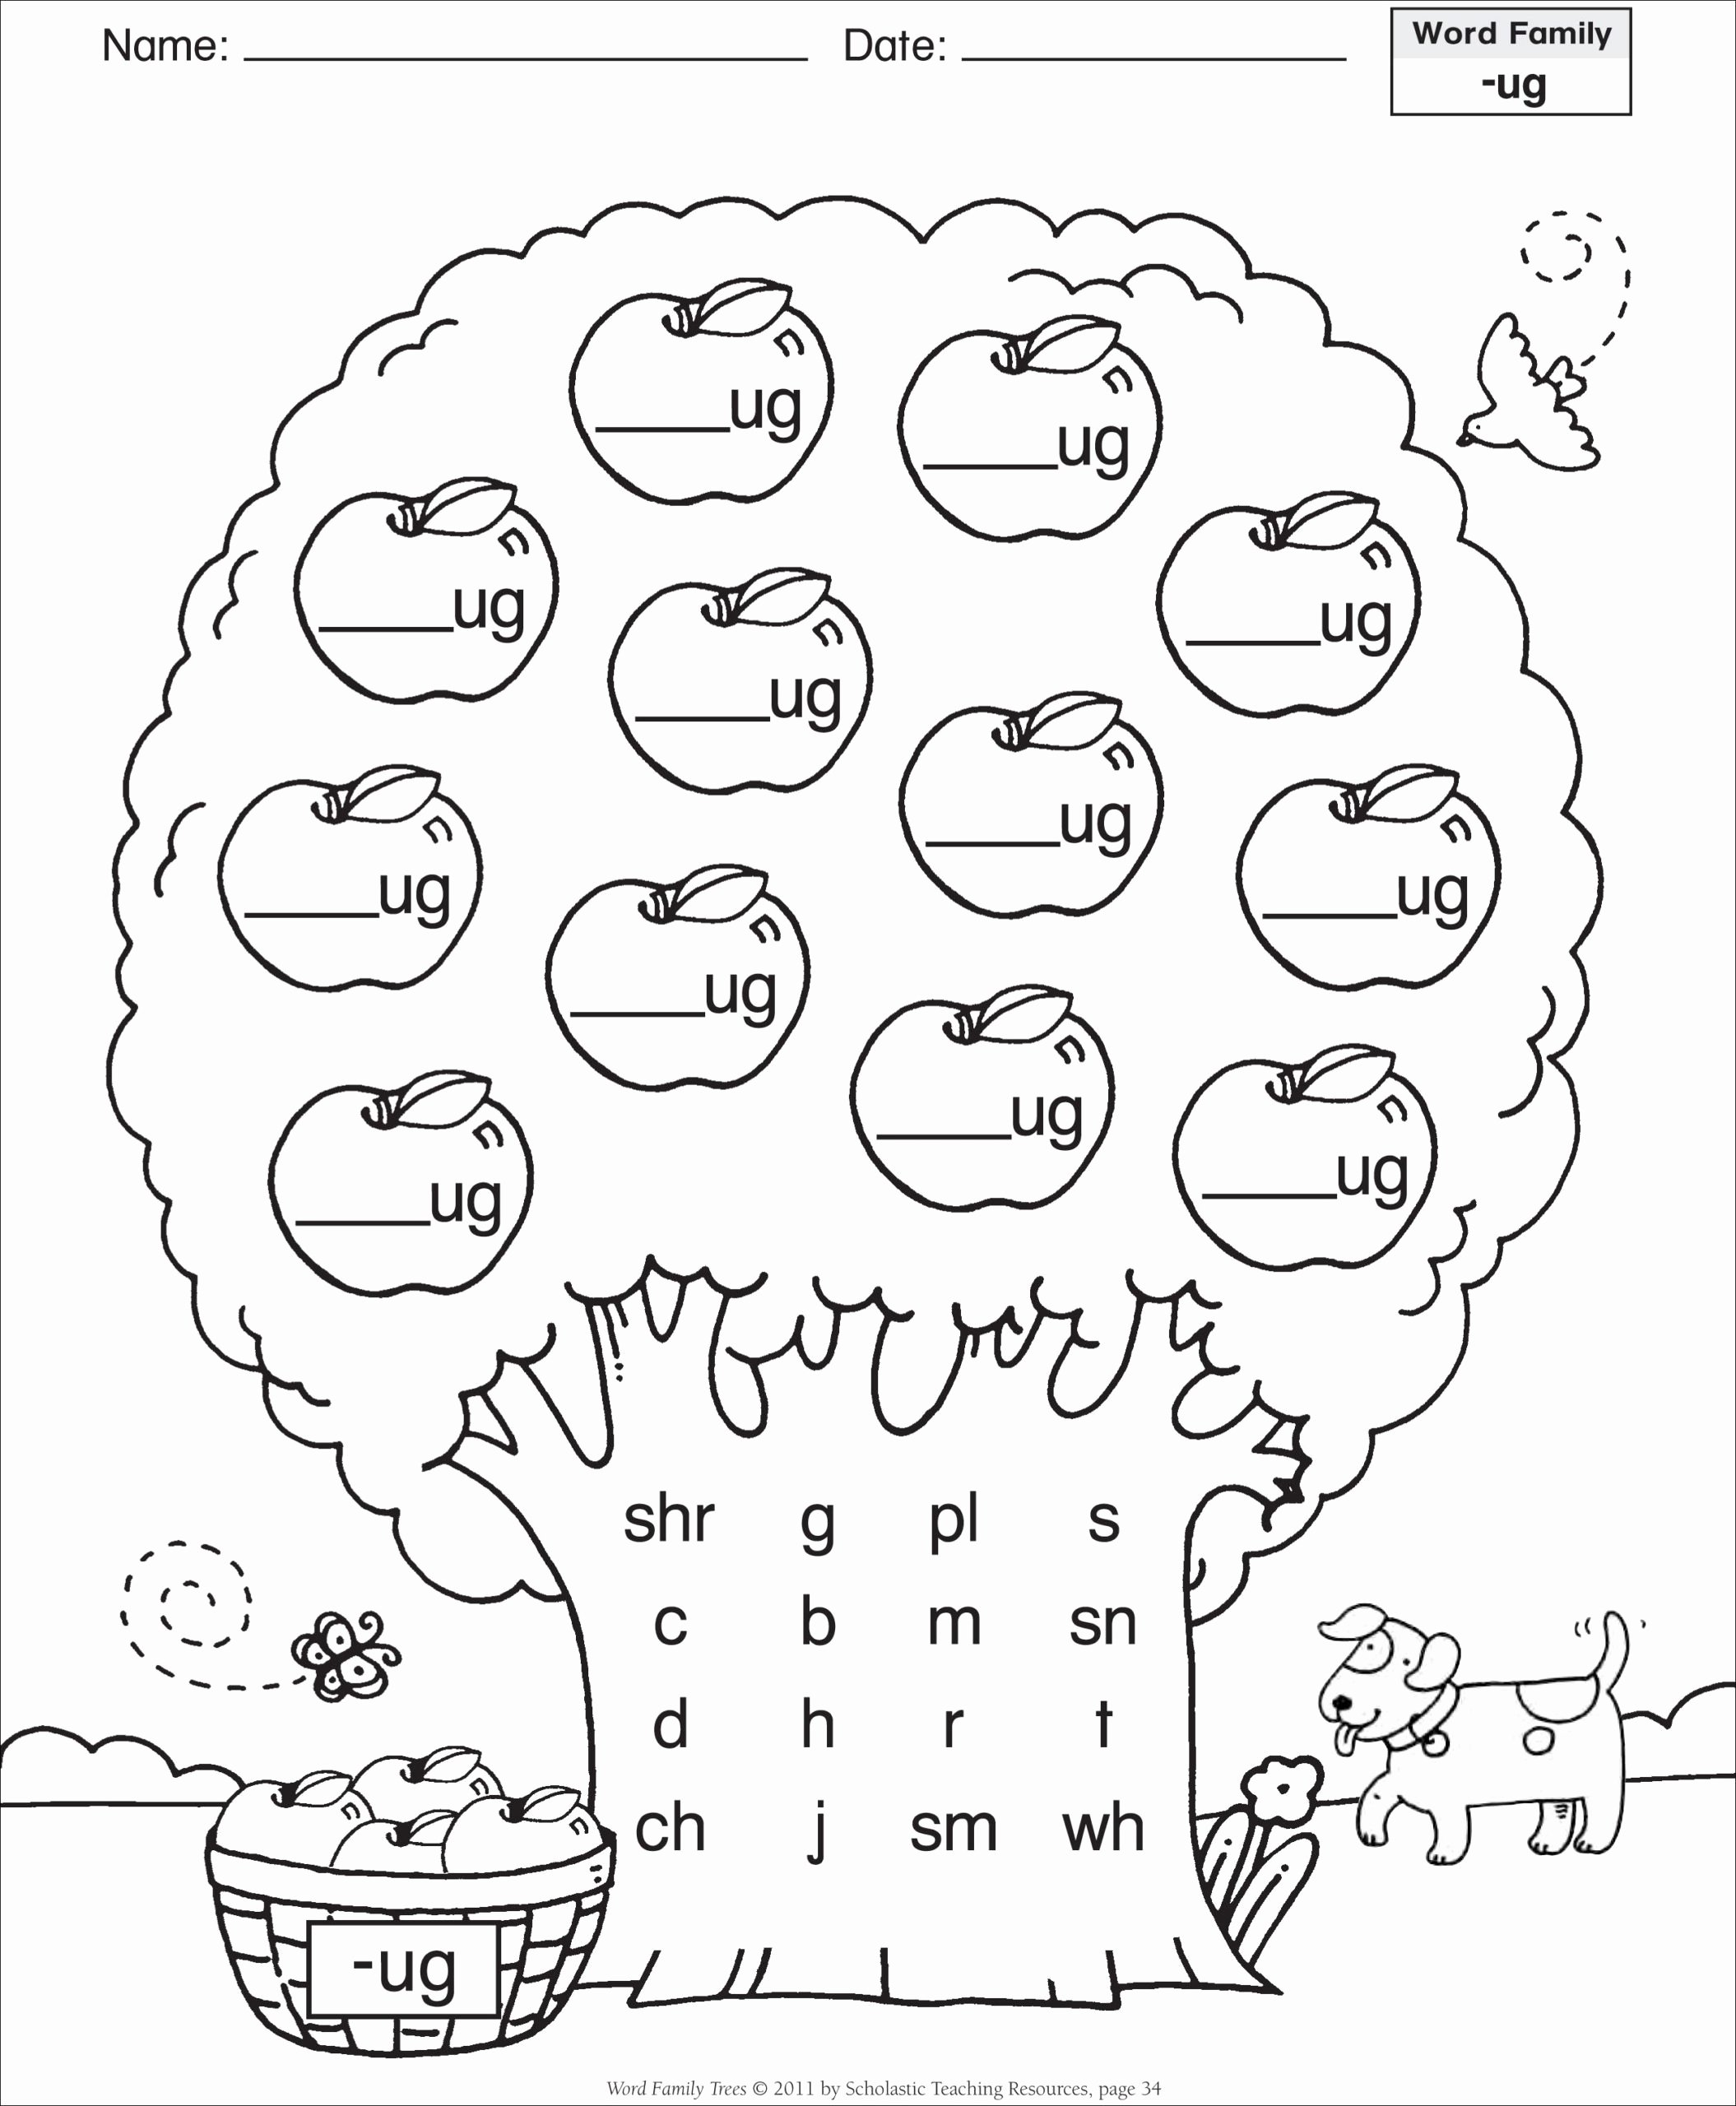 Cvc Cut and Paste Worksheets Inspirational Short Vowel Ug Word Family Tree Families Reading Free Cvc